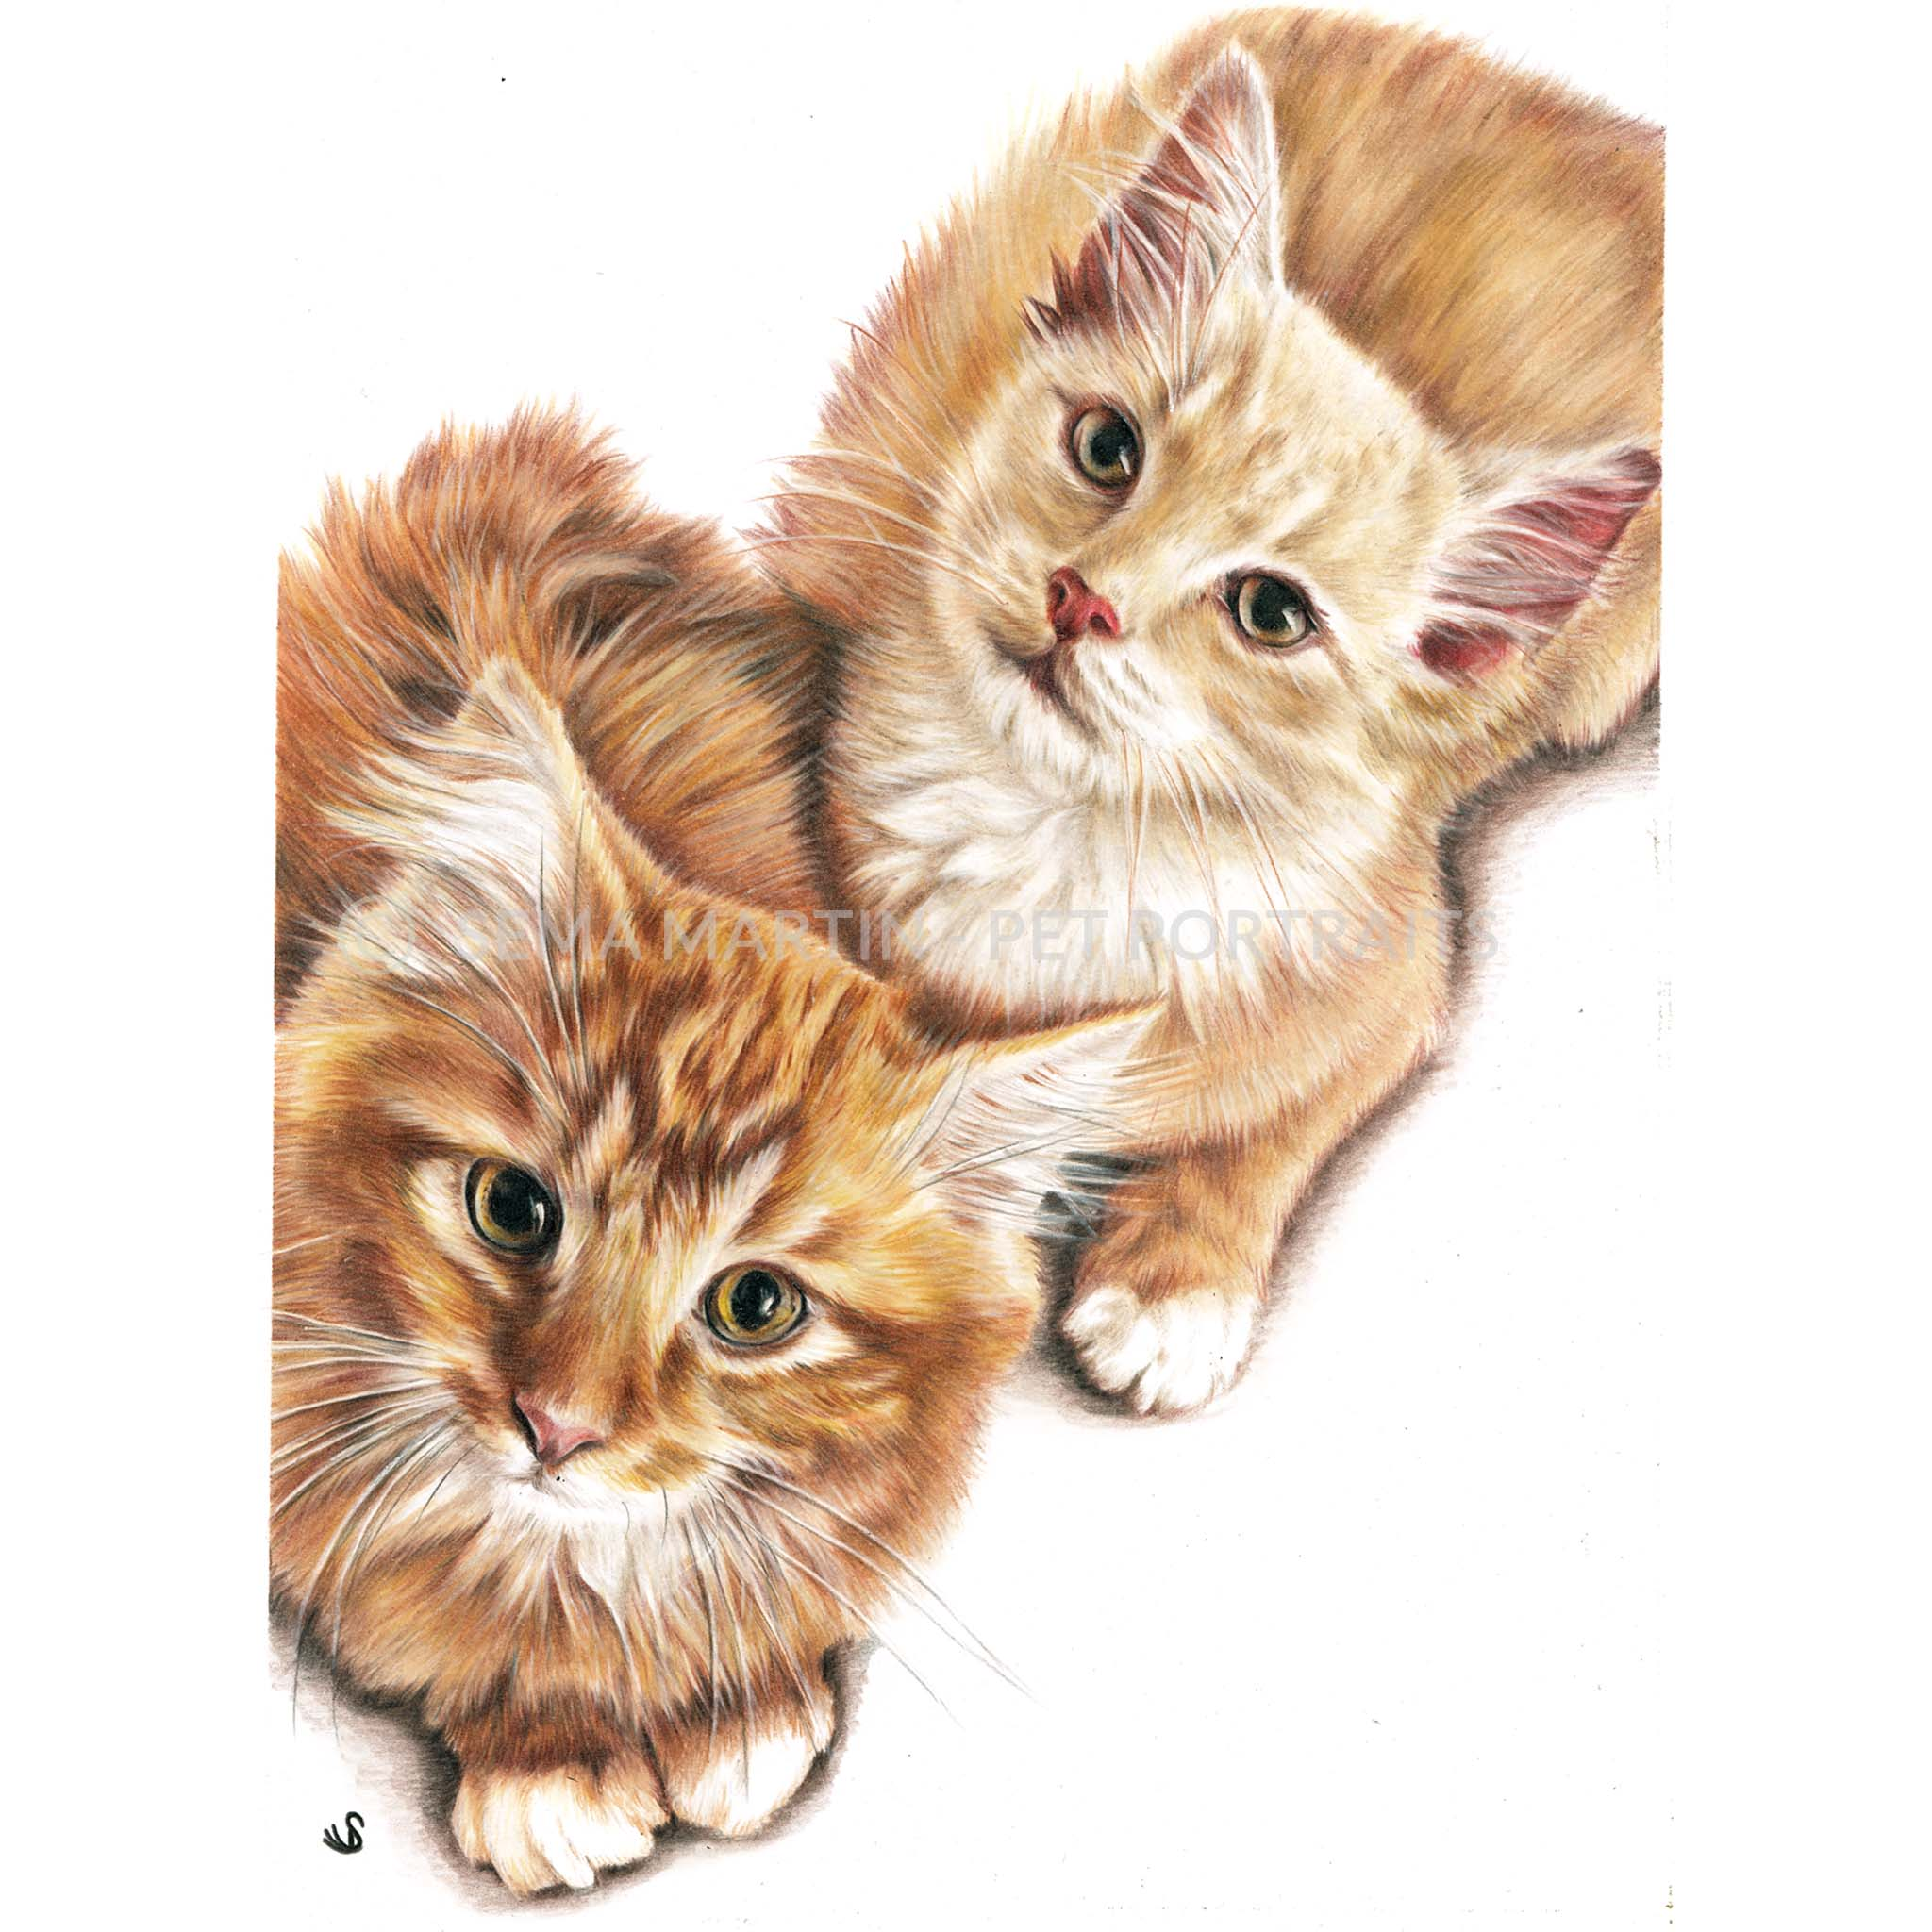 'Braemar & Finley' - USA, 8.3 x 11.7 inches, 2019, Color Pencil Portrait of two cute ginger tabby kittens